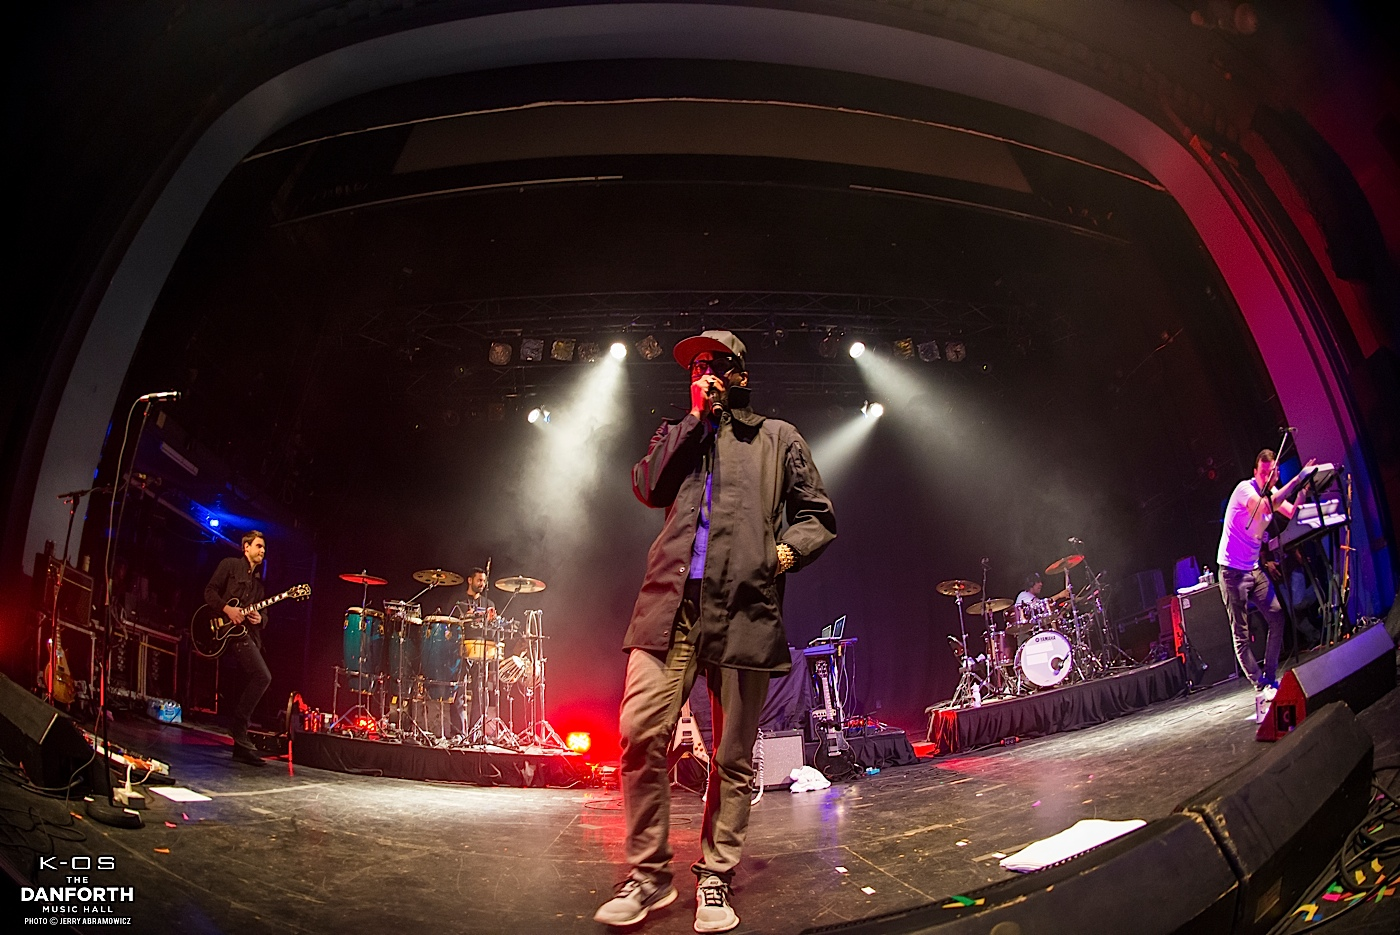 K-OS plays to a packed house at The Danforth Music Hall.